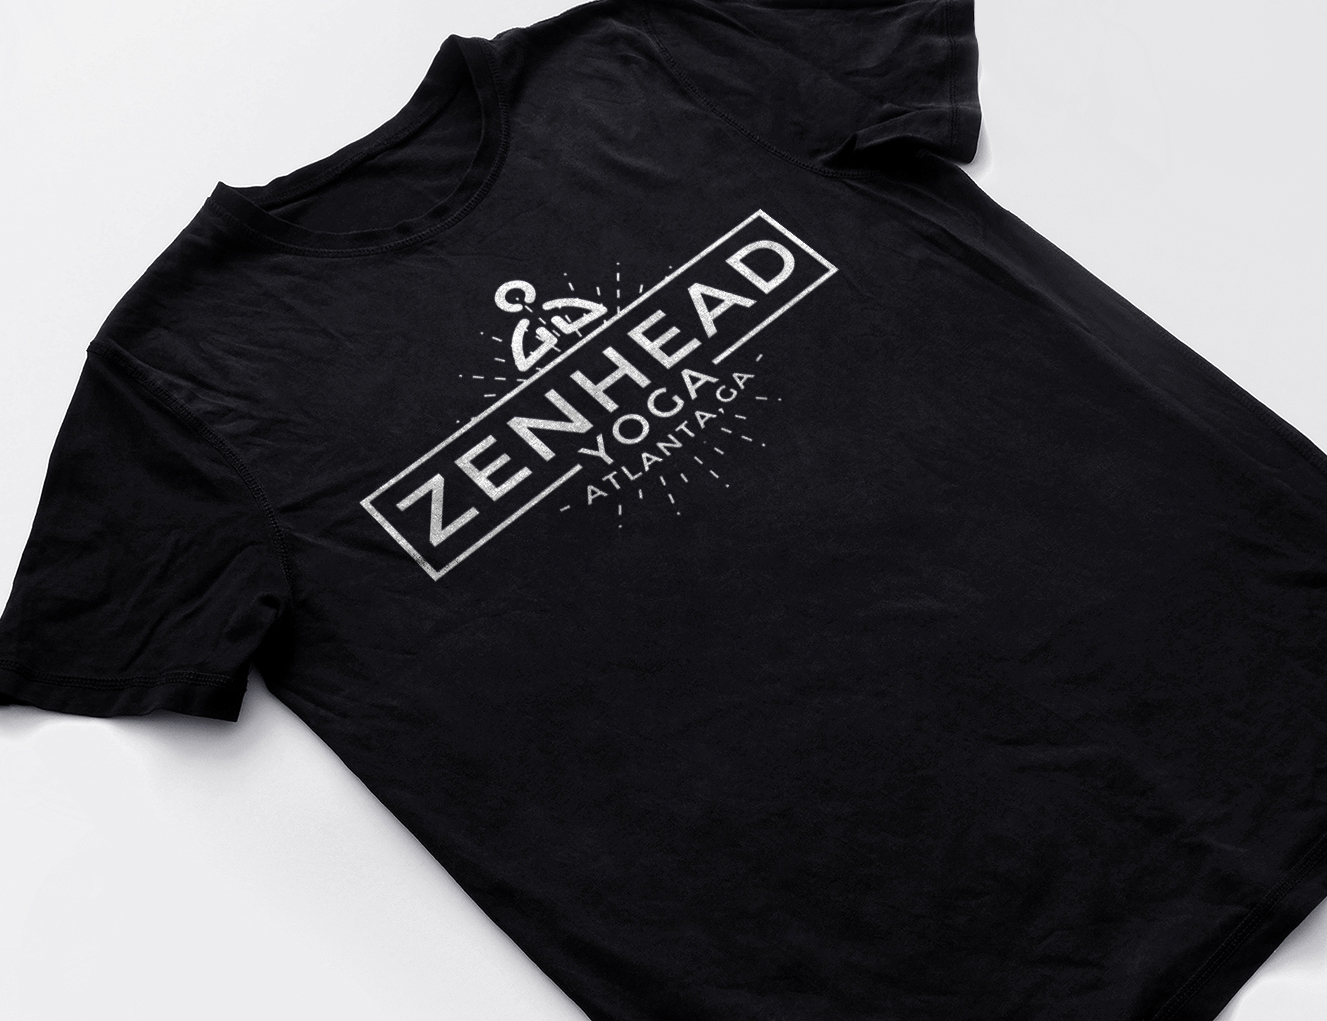 Zenhead yoga studio logo on black t-shirt